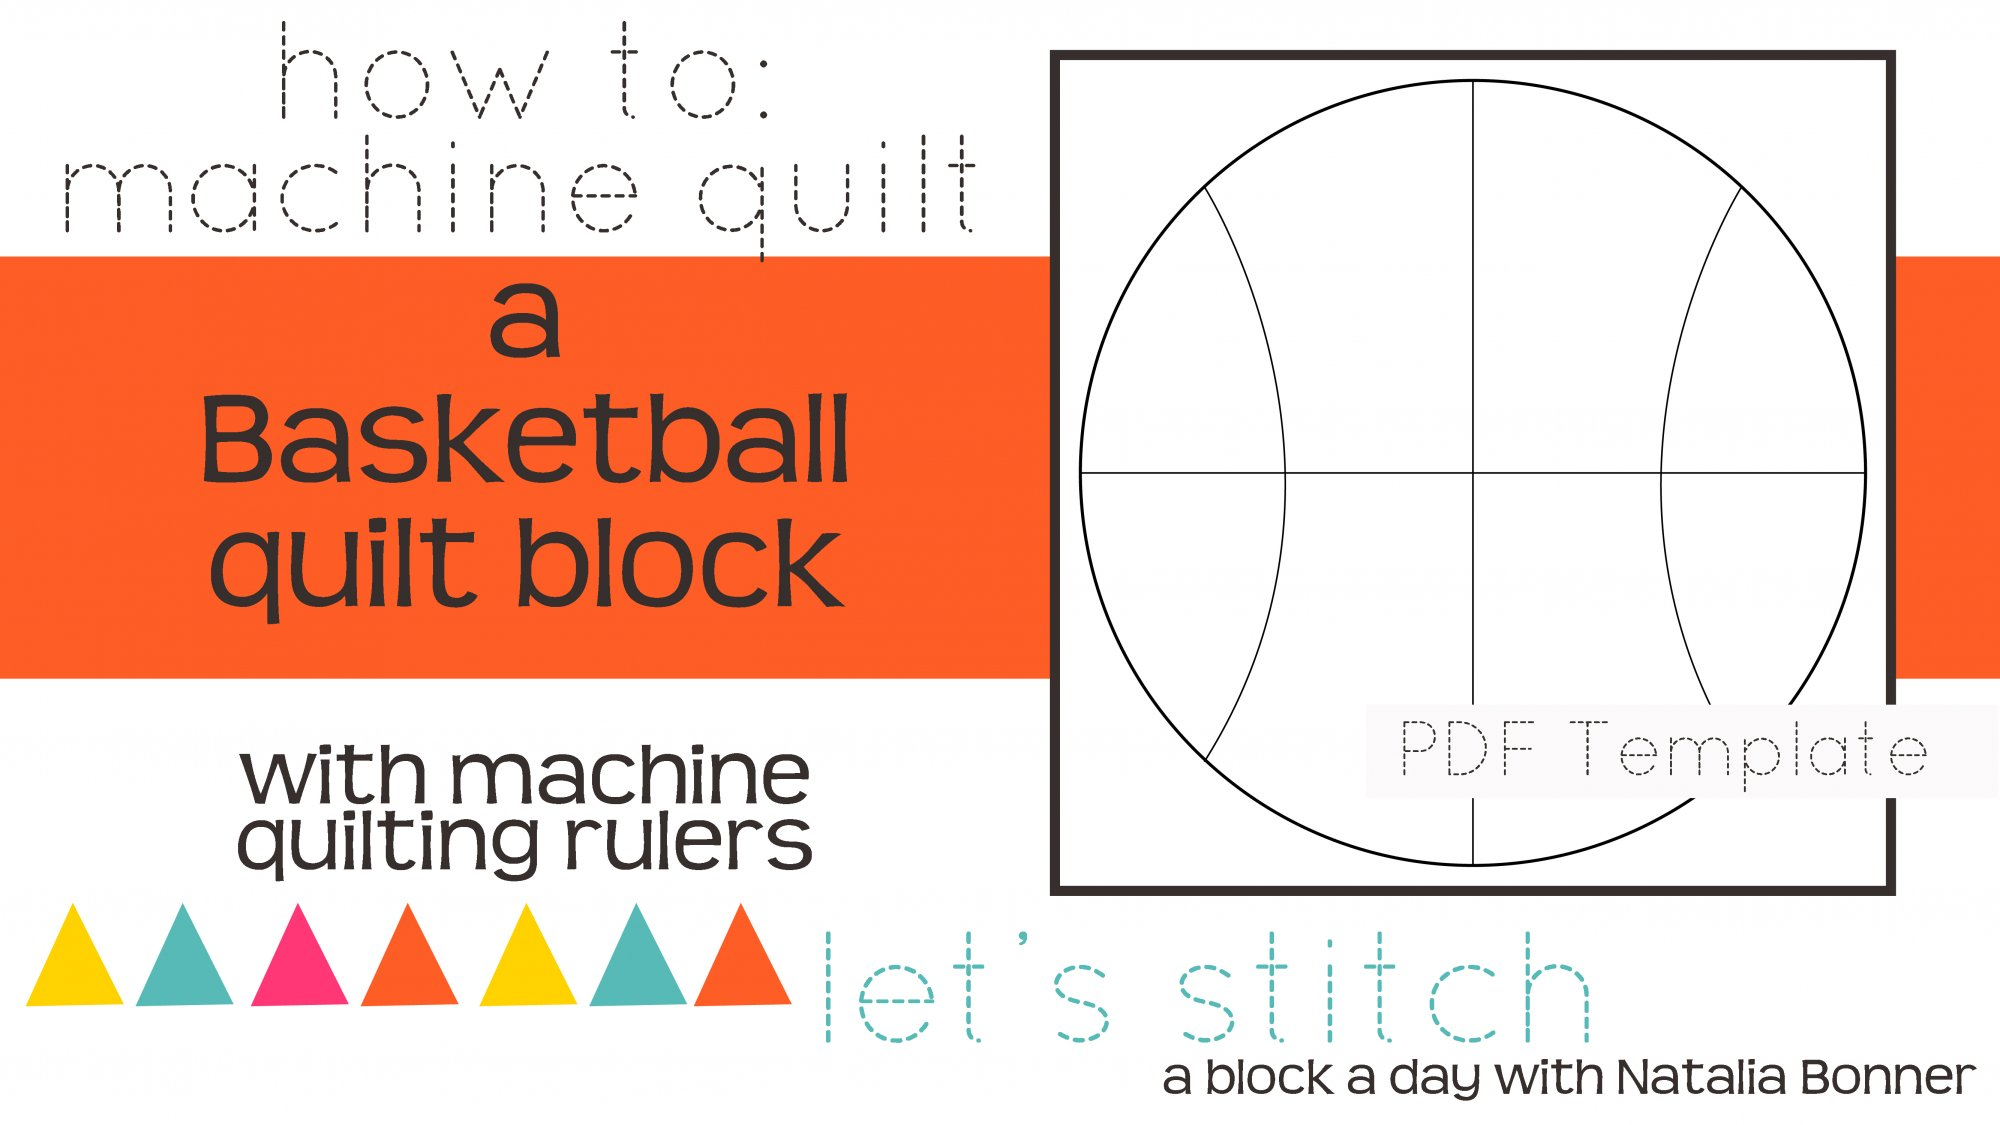 Let's Stitch - A Block a Day With Natalia Bonner - PDF - Basketball